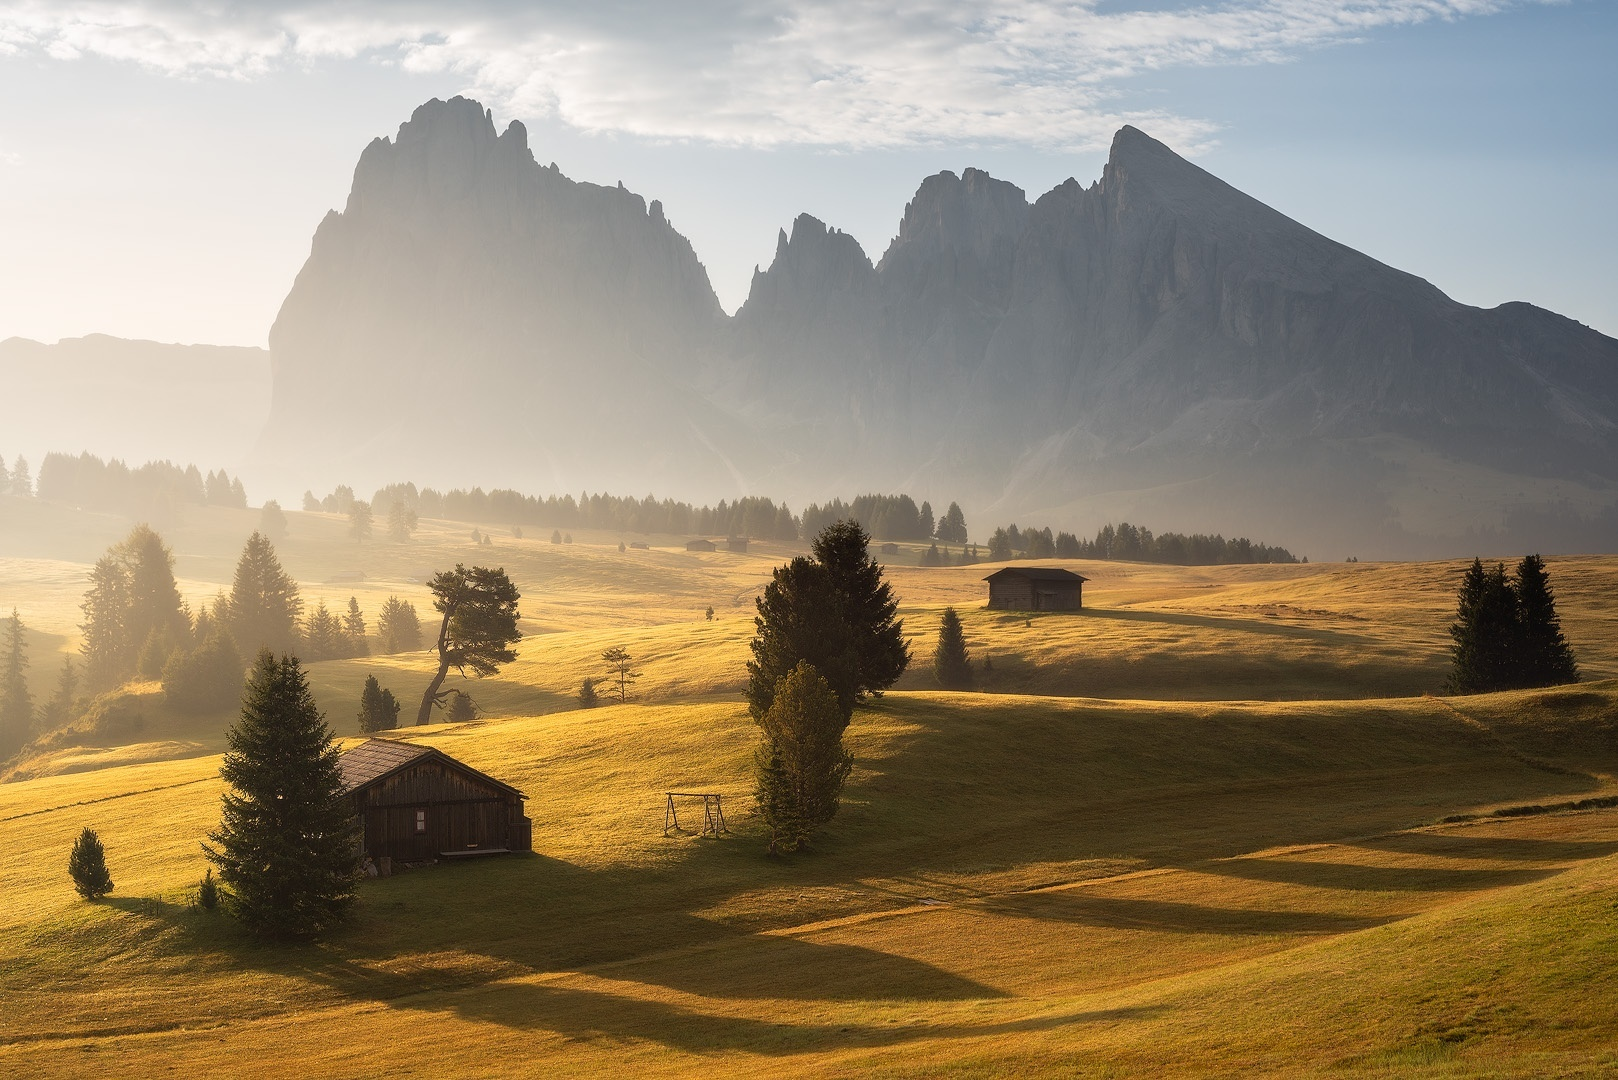 © David Gonçalves - Alpe di Siusi